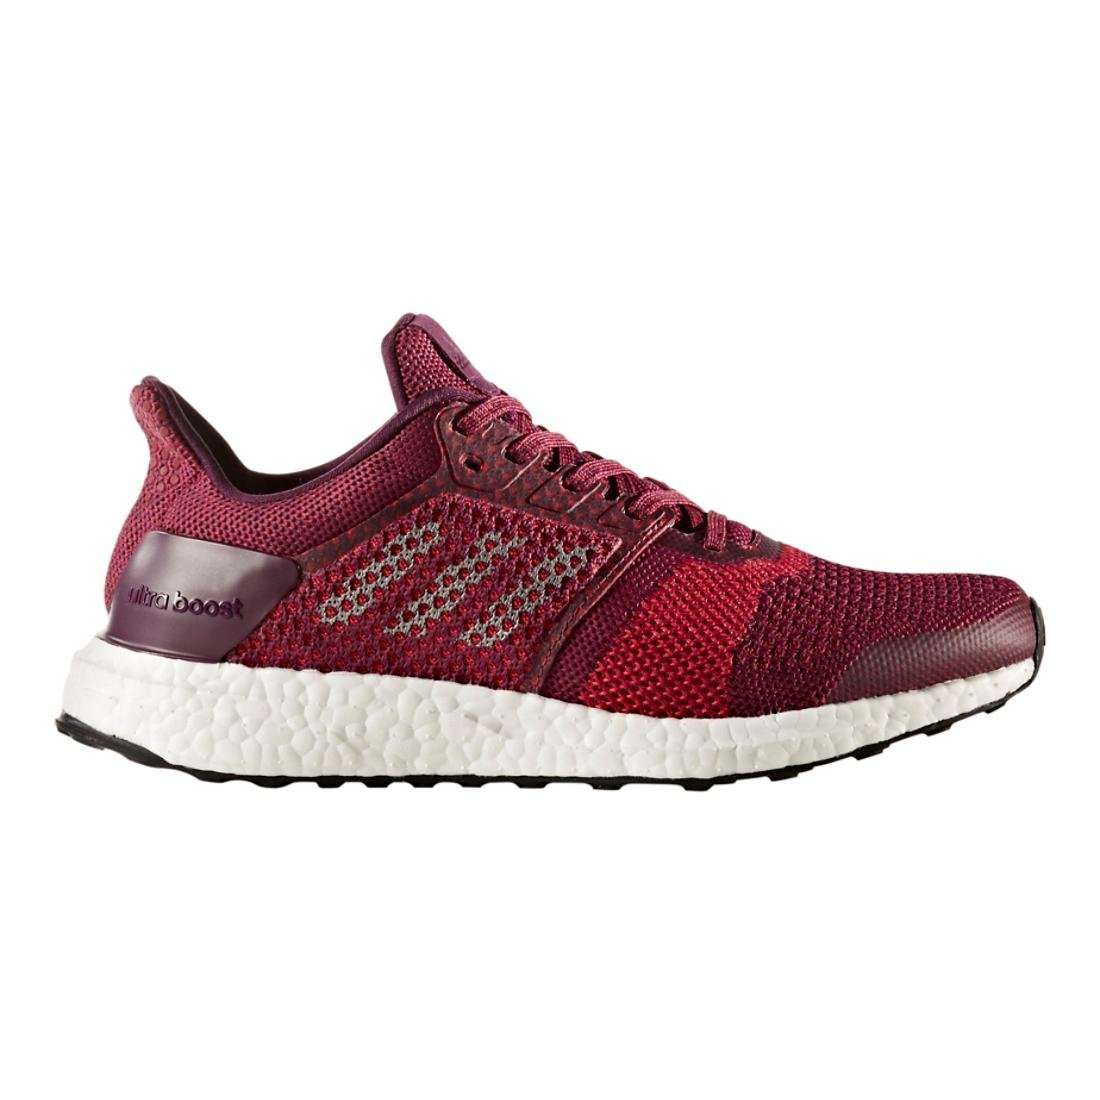 adidas Women's Ultraboost St Parley Running Shoe B075S21C5C 8.0 B(M) US|Mystery Ruby